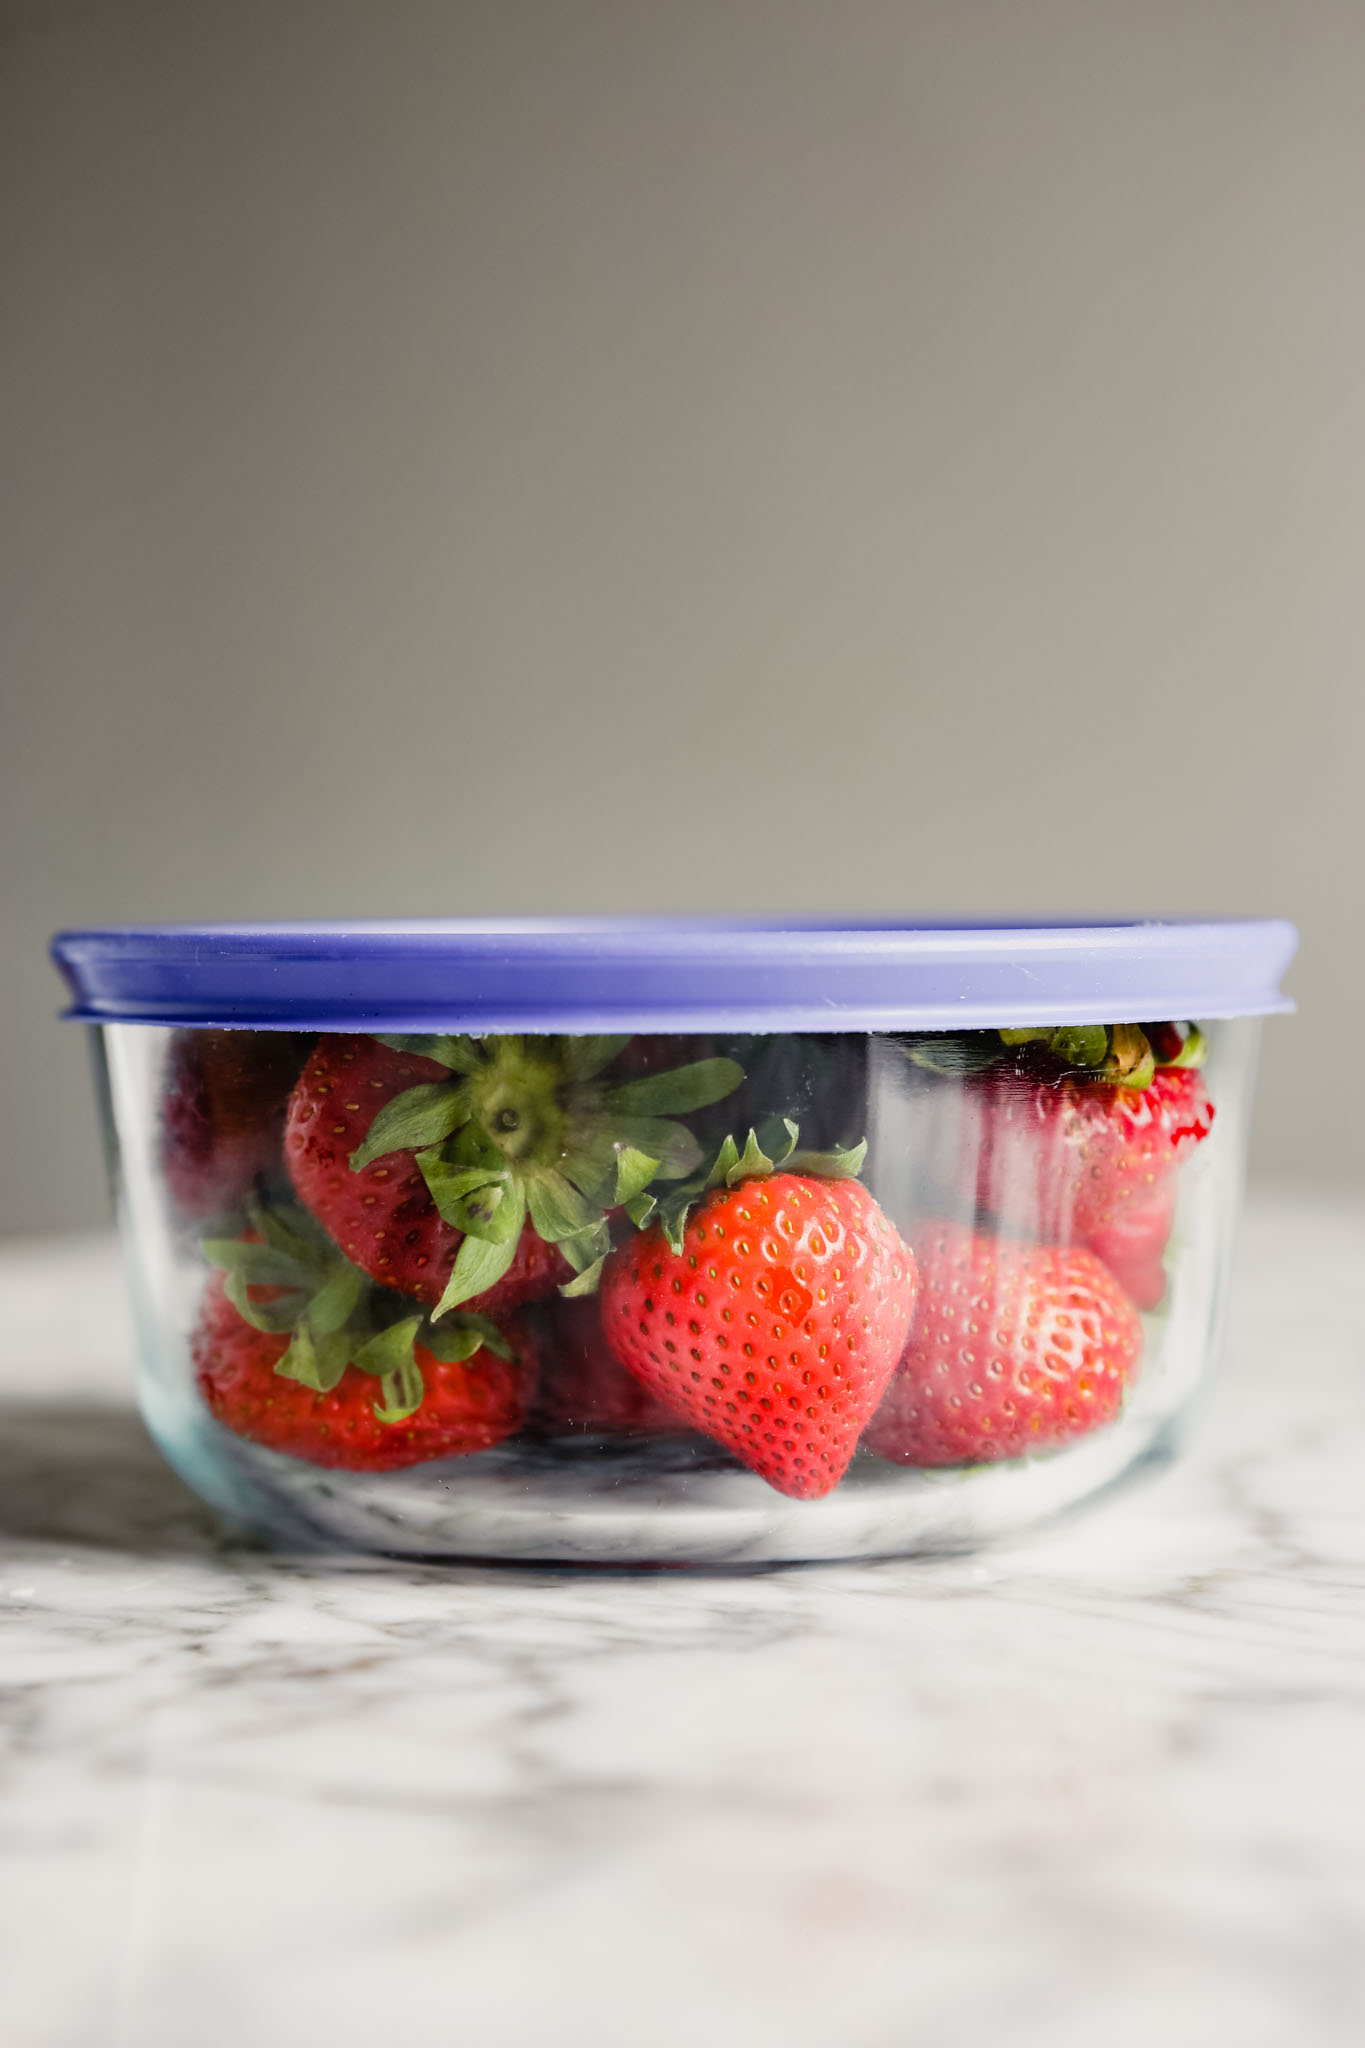 Photograph of fresh strawberries in a glass storage container with a blue lid set on a marble table